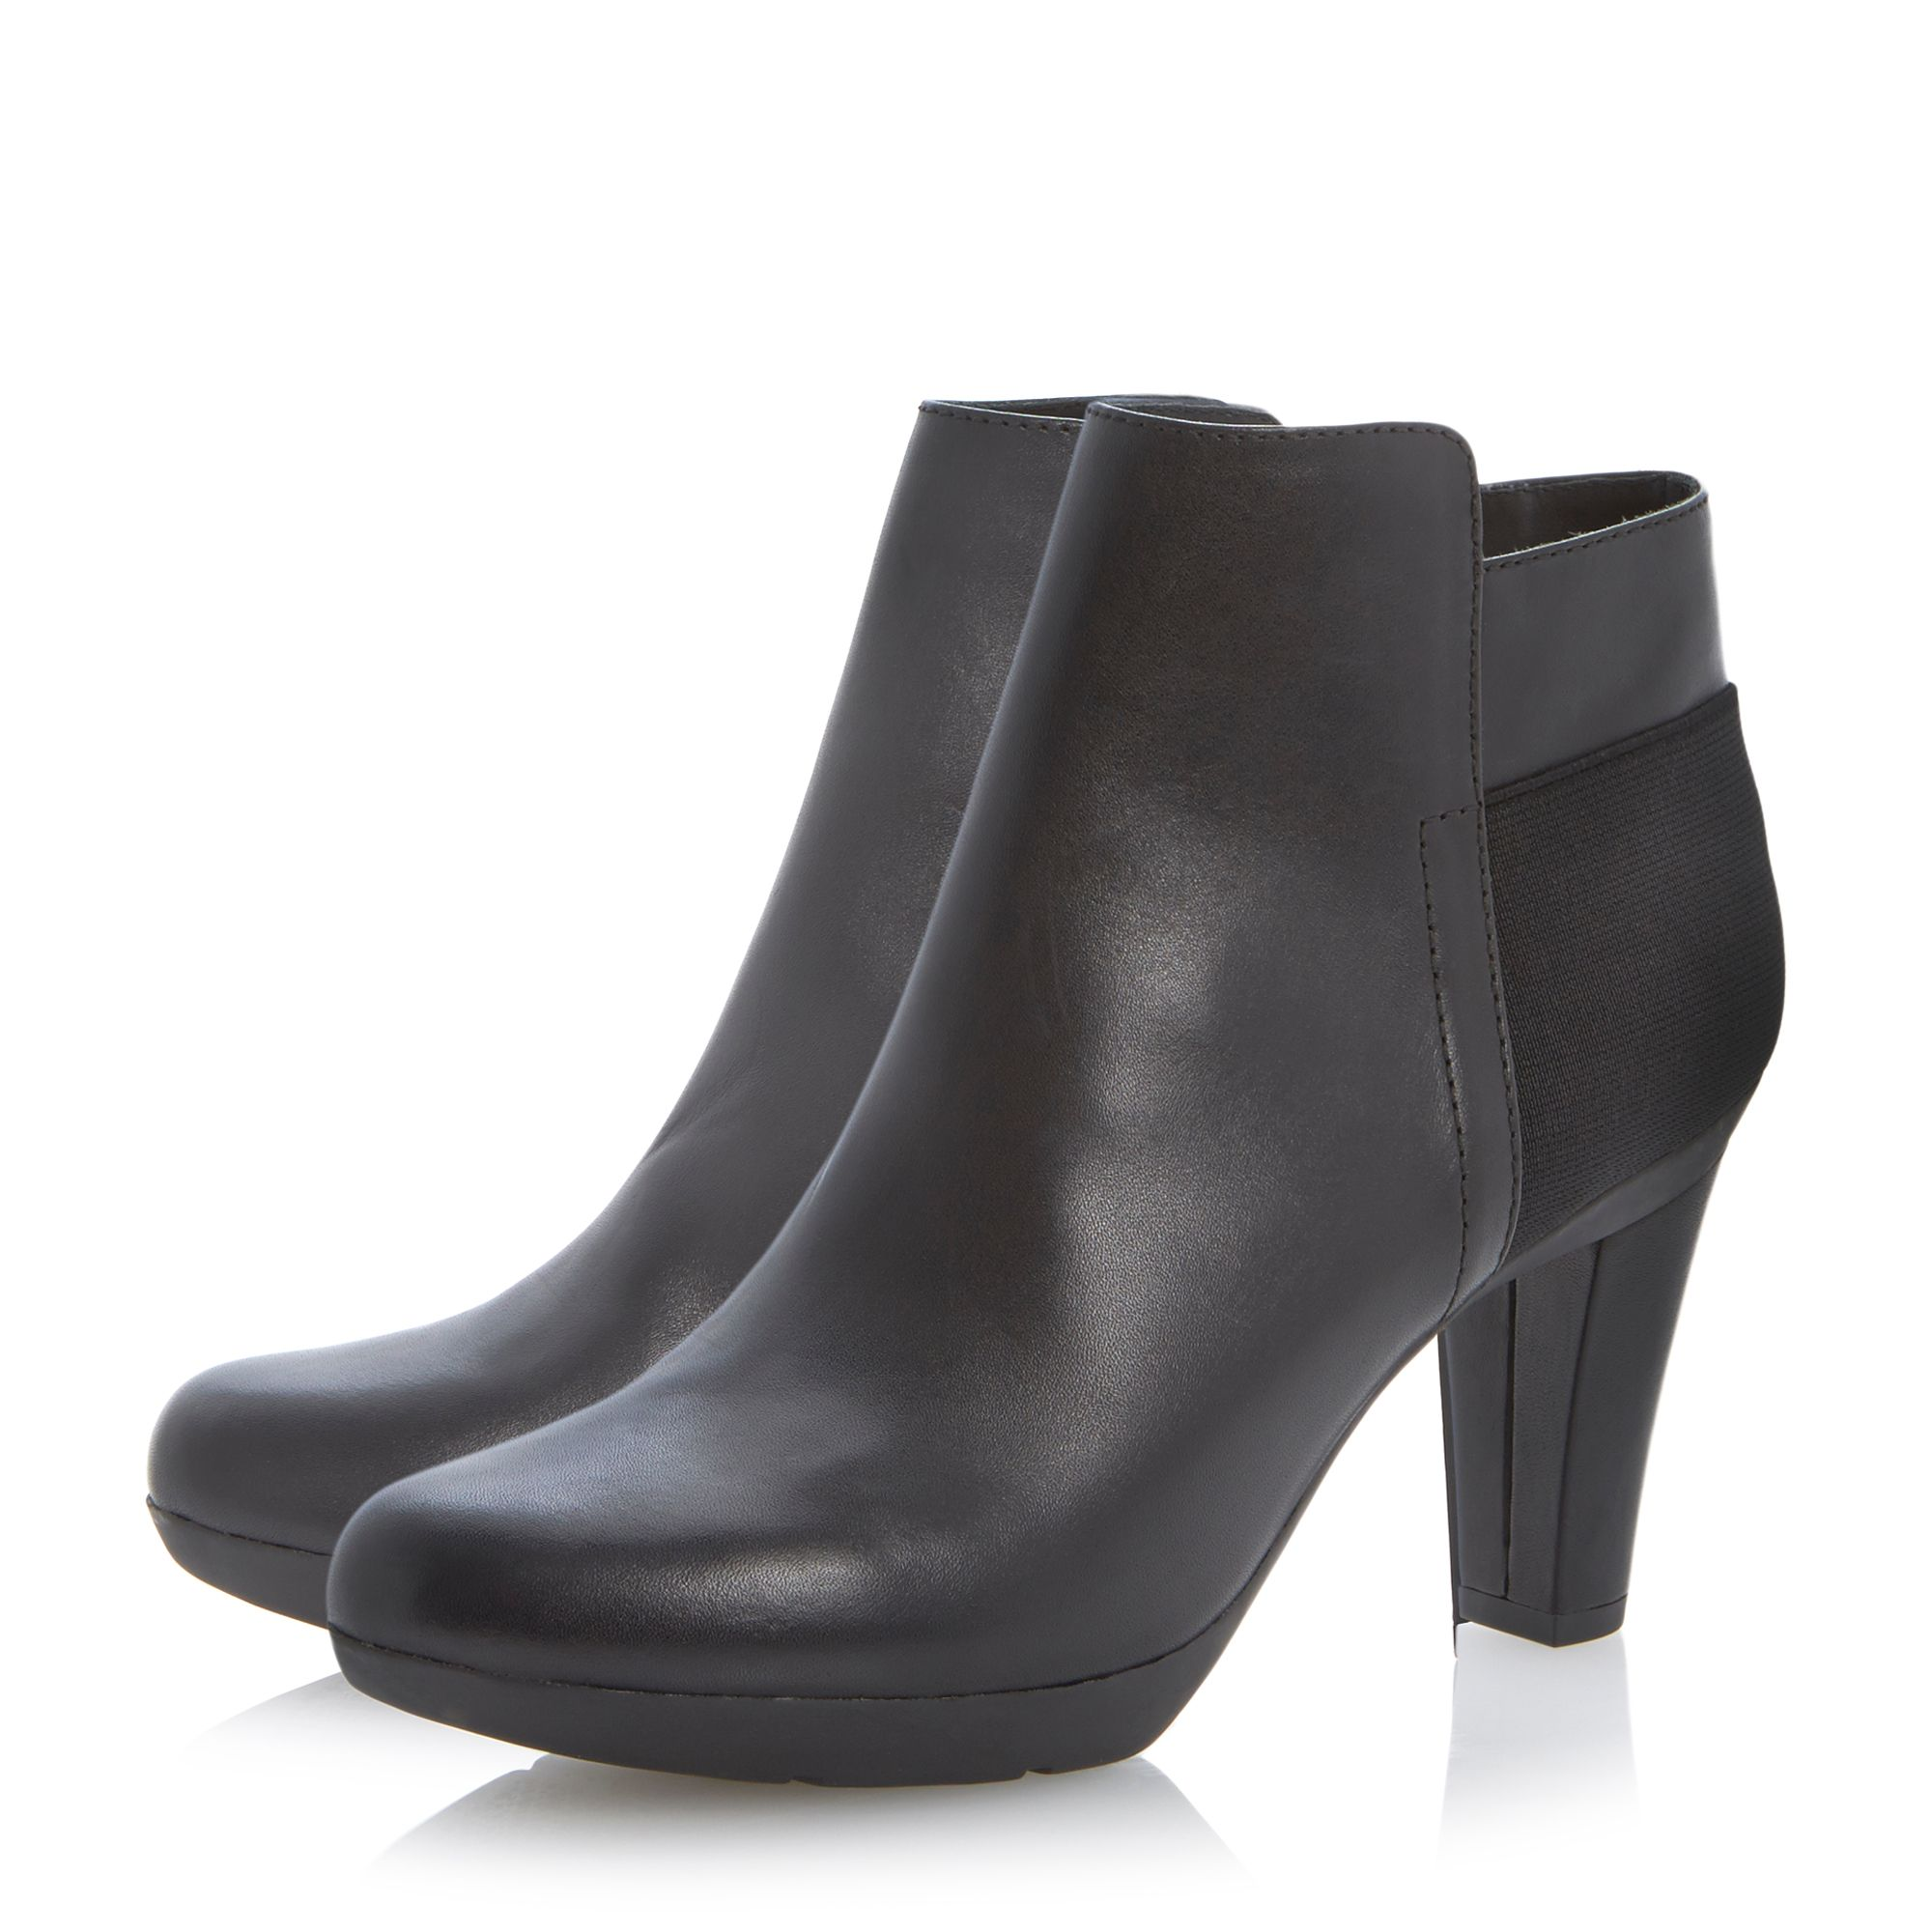 Inspiration plain toe ankle boots